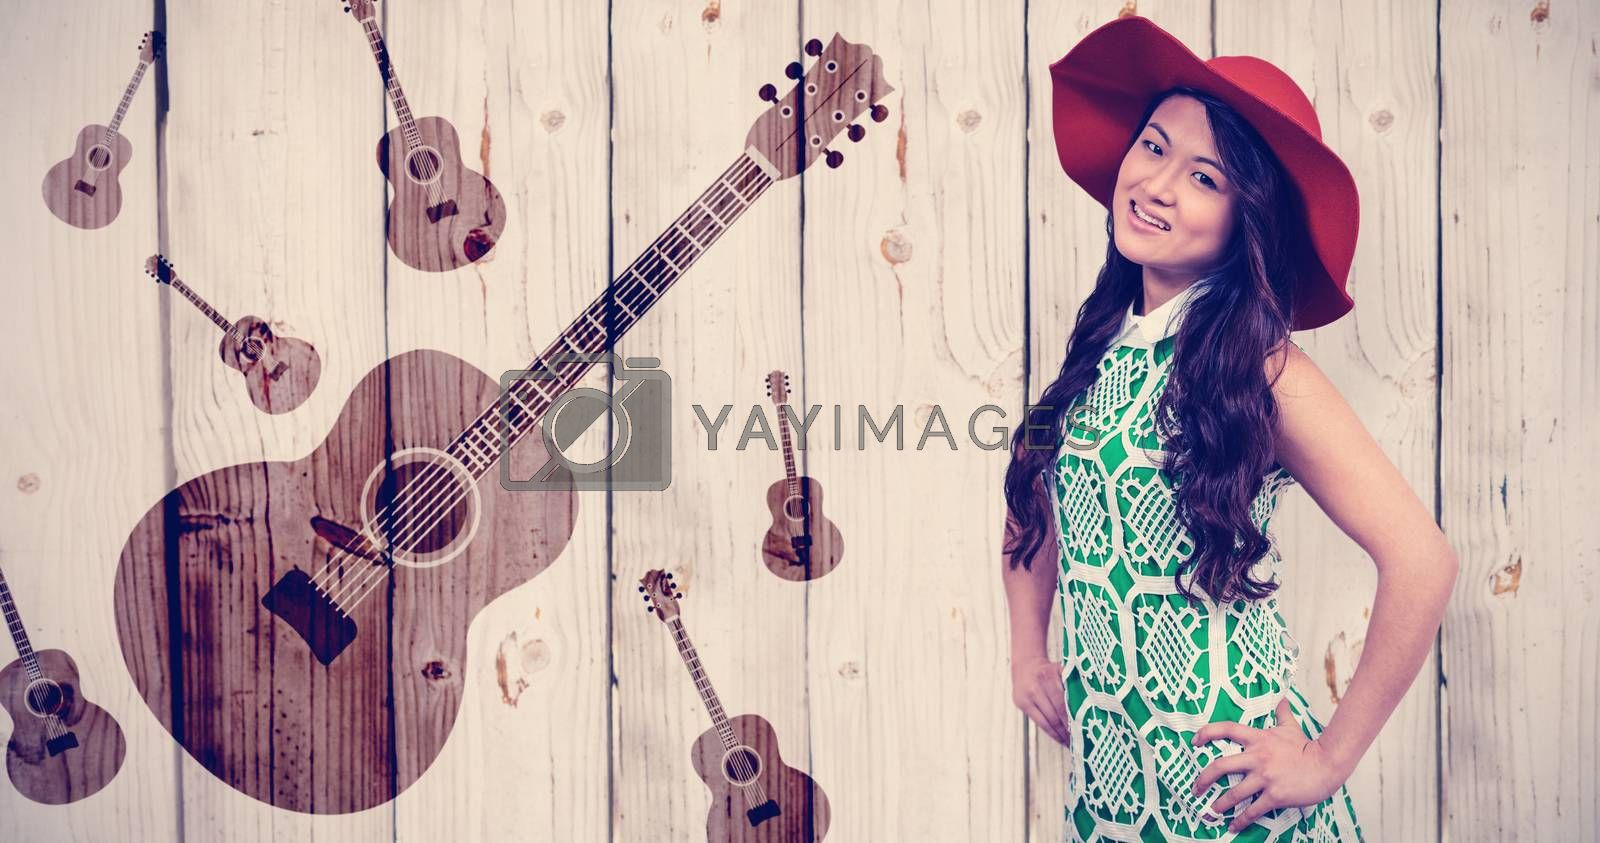 Asian woman with hat posing for camera against wooden background